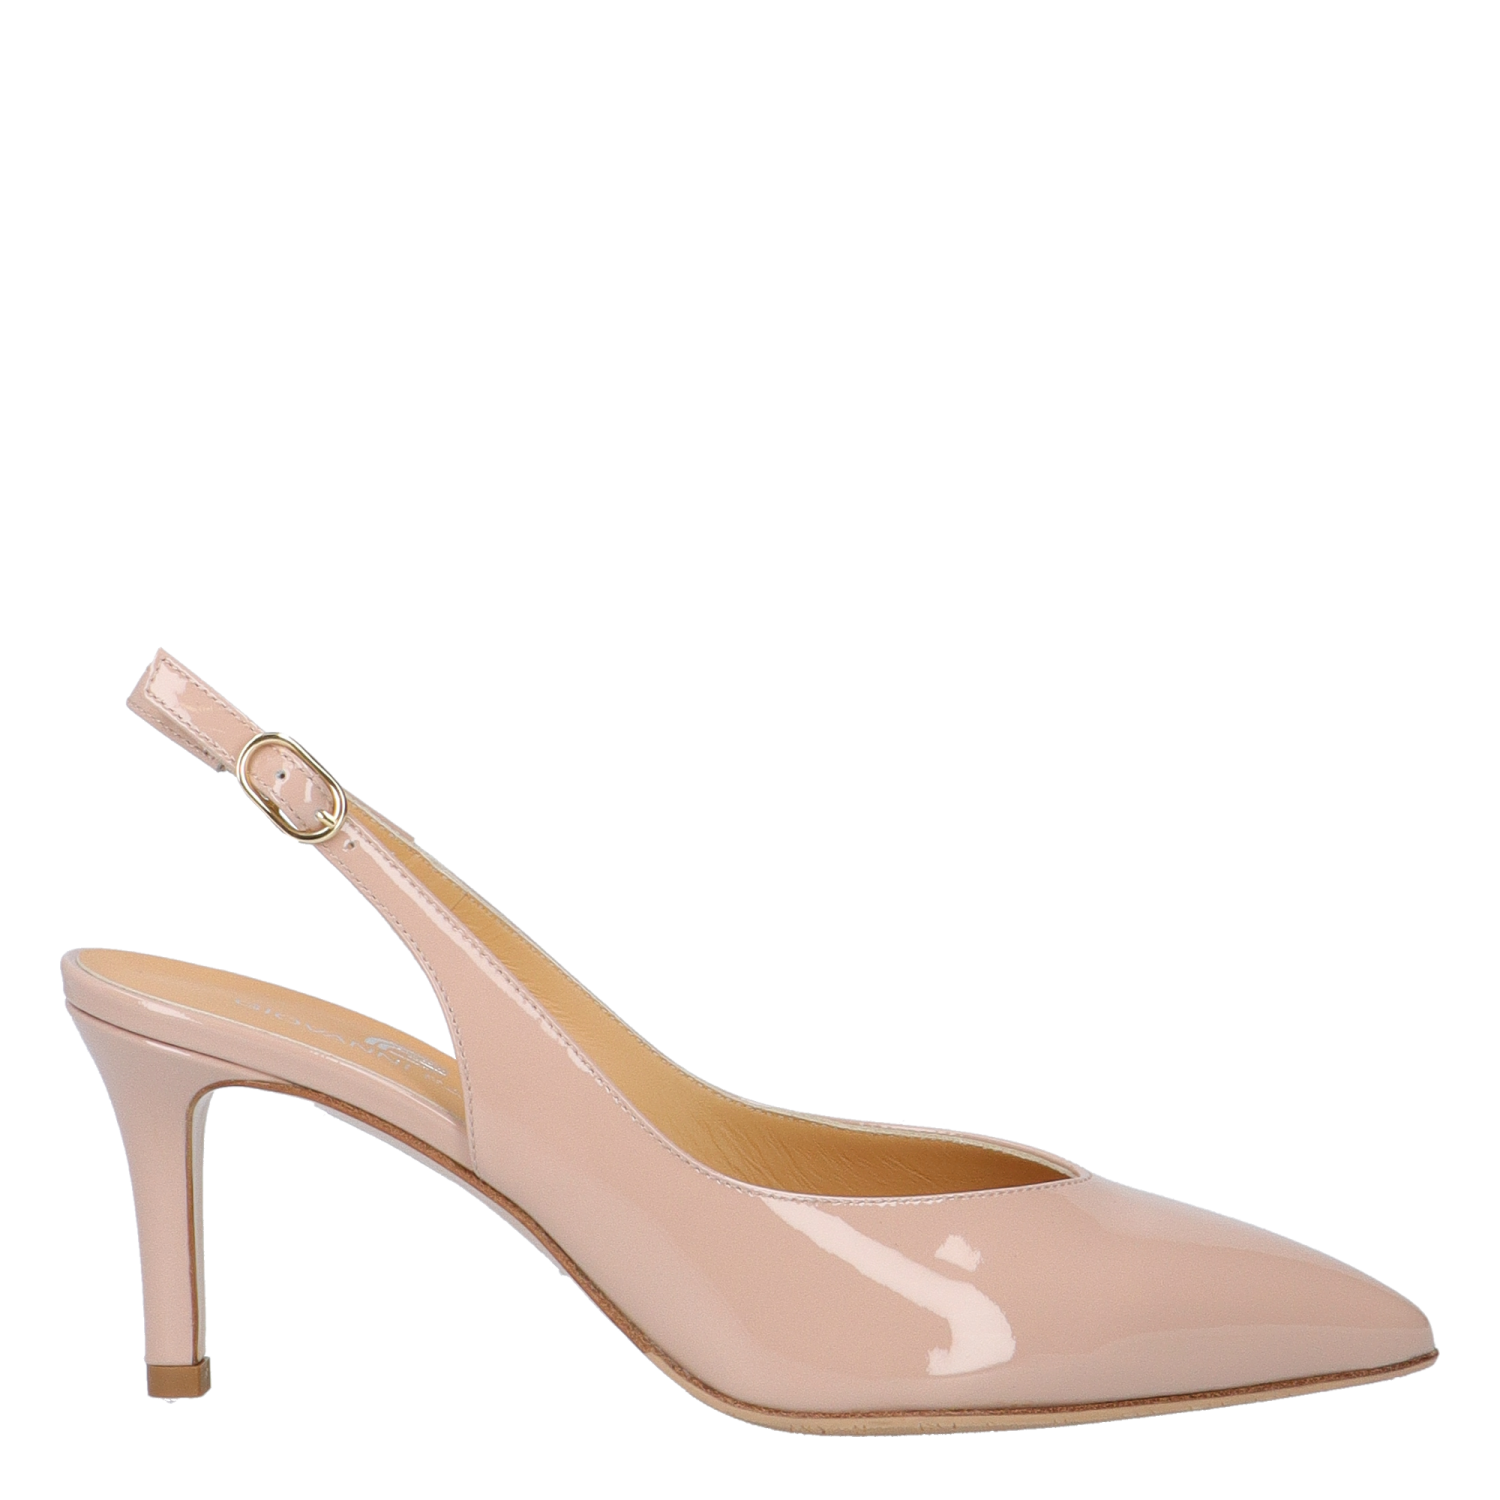 FLORA PINK PATENT LEATHER SLINGBACK PUMPS